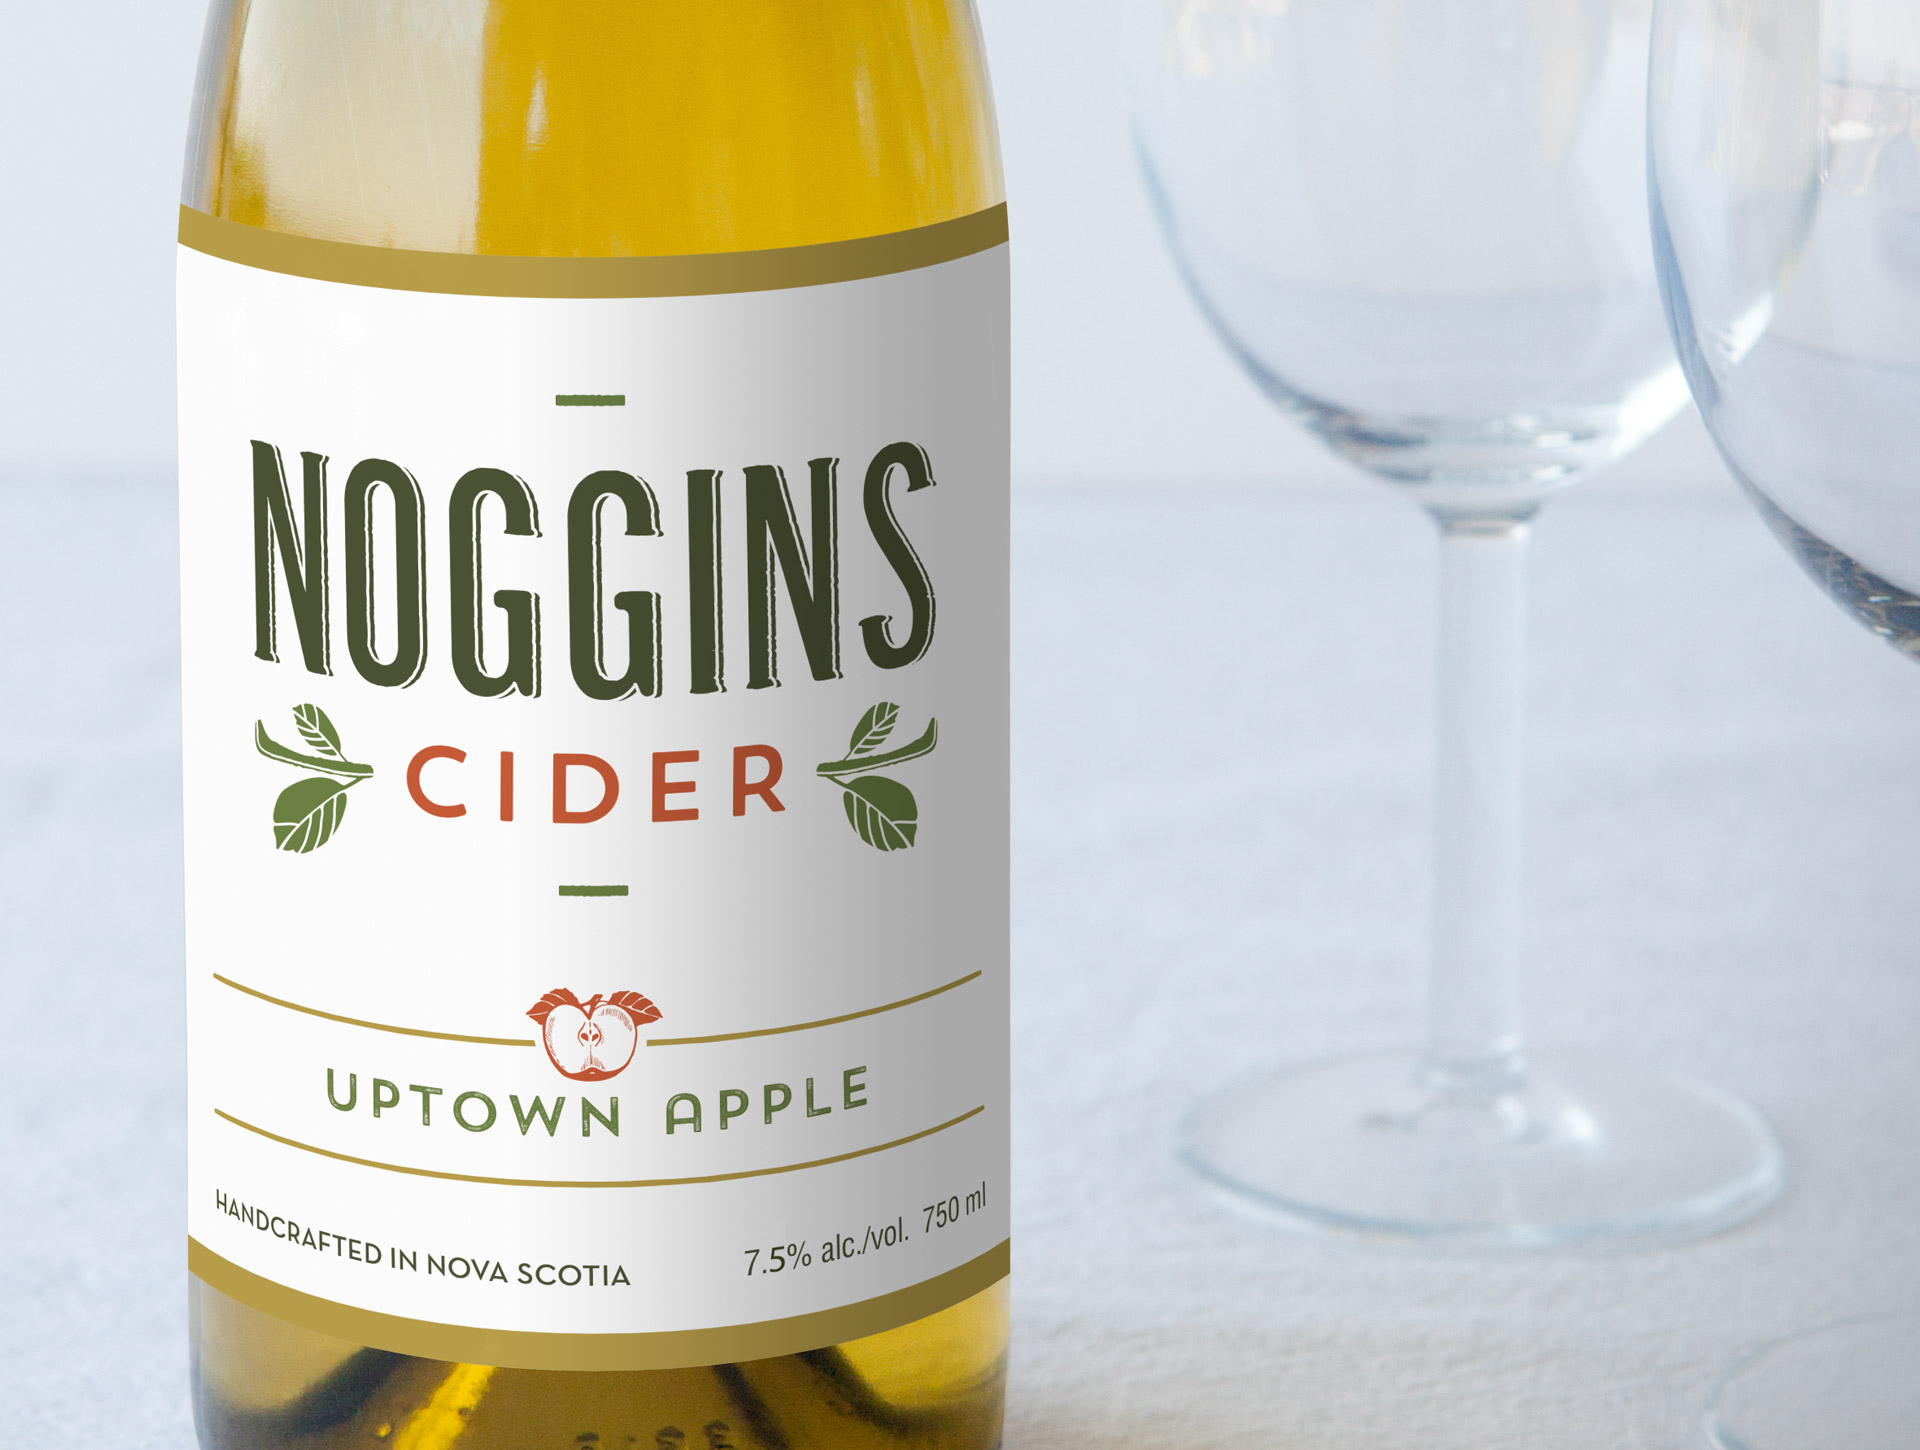 Noggins Cider Bottle - Uptown Apple